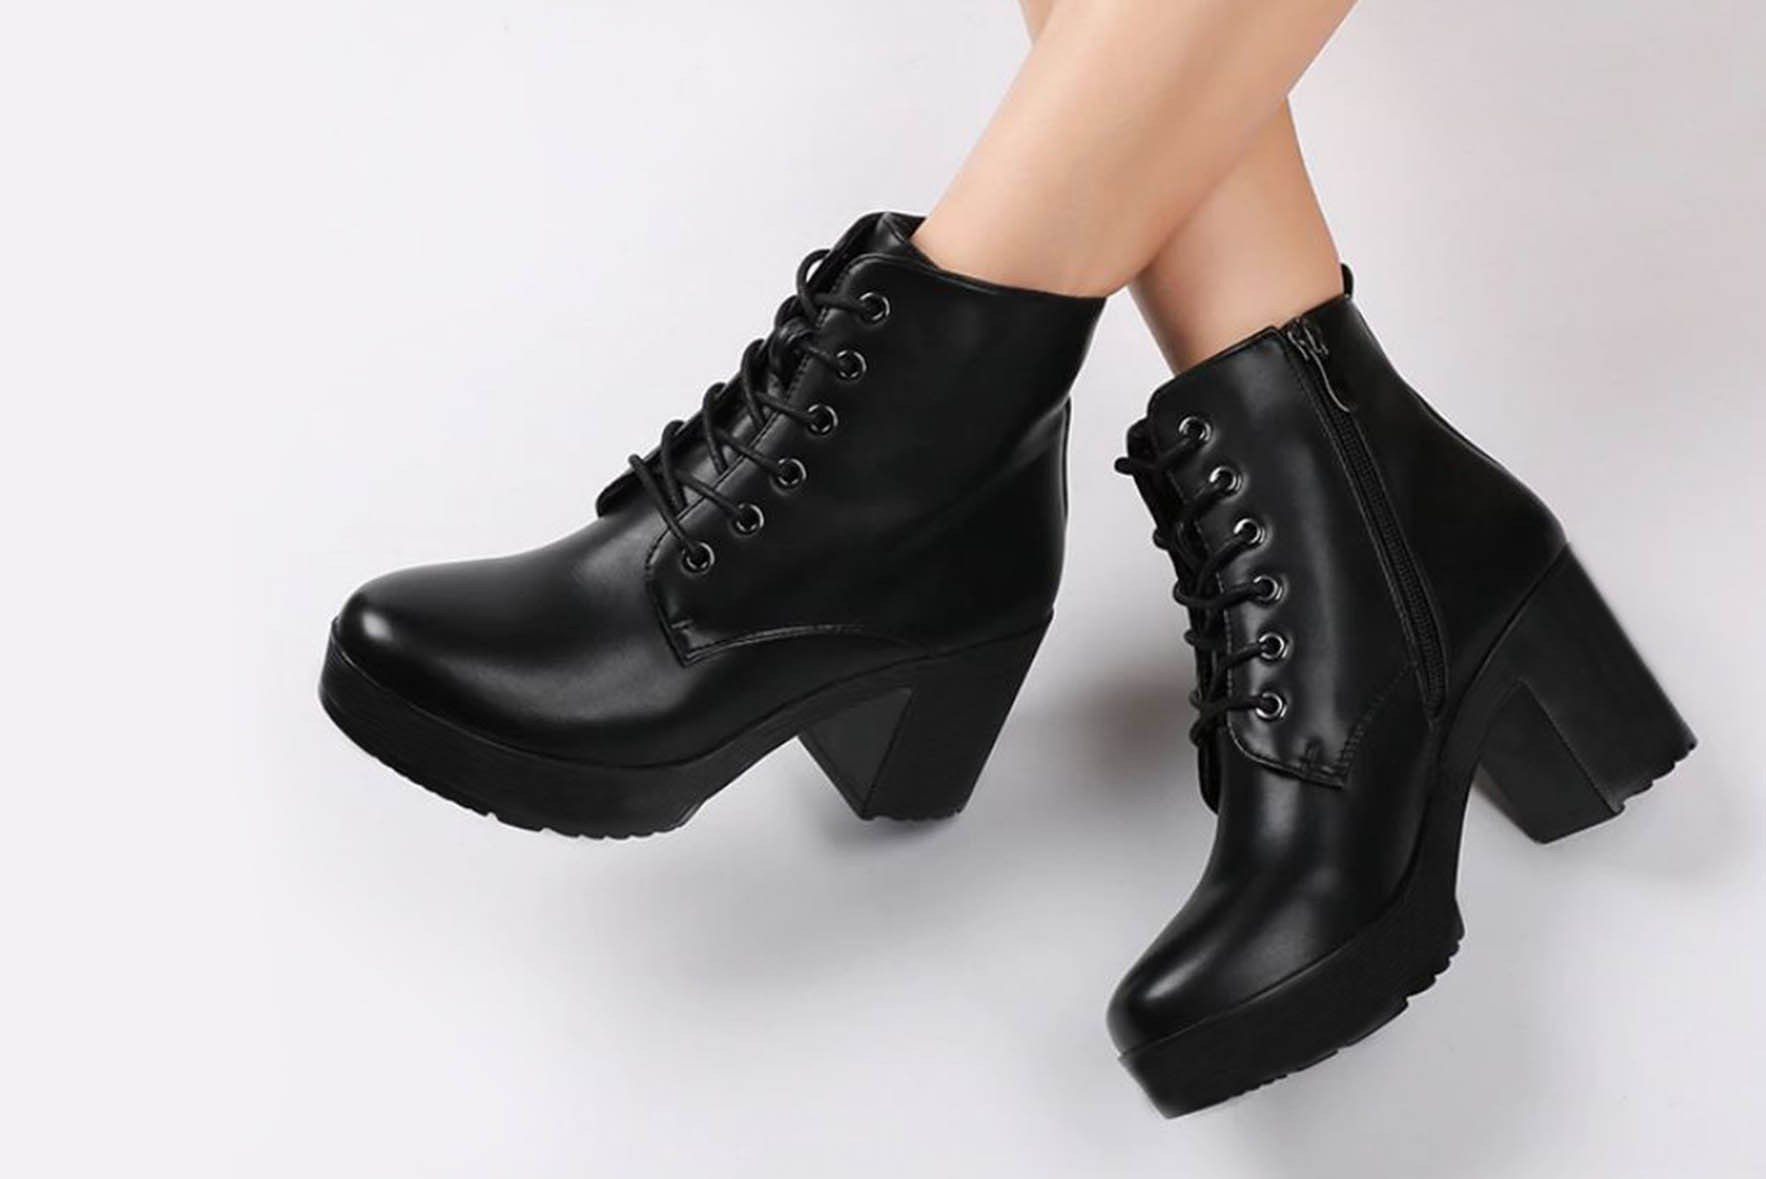 Long boot for girls: Giving out that kinky and sexy look